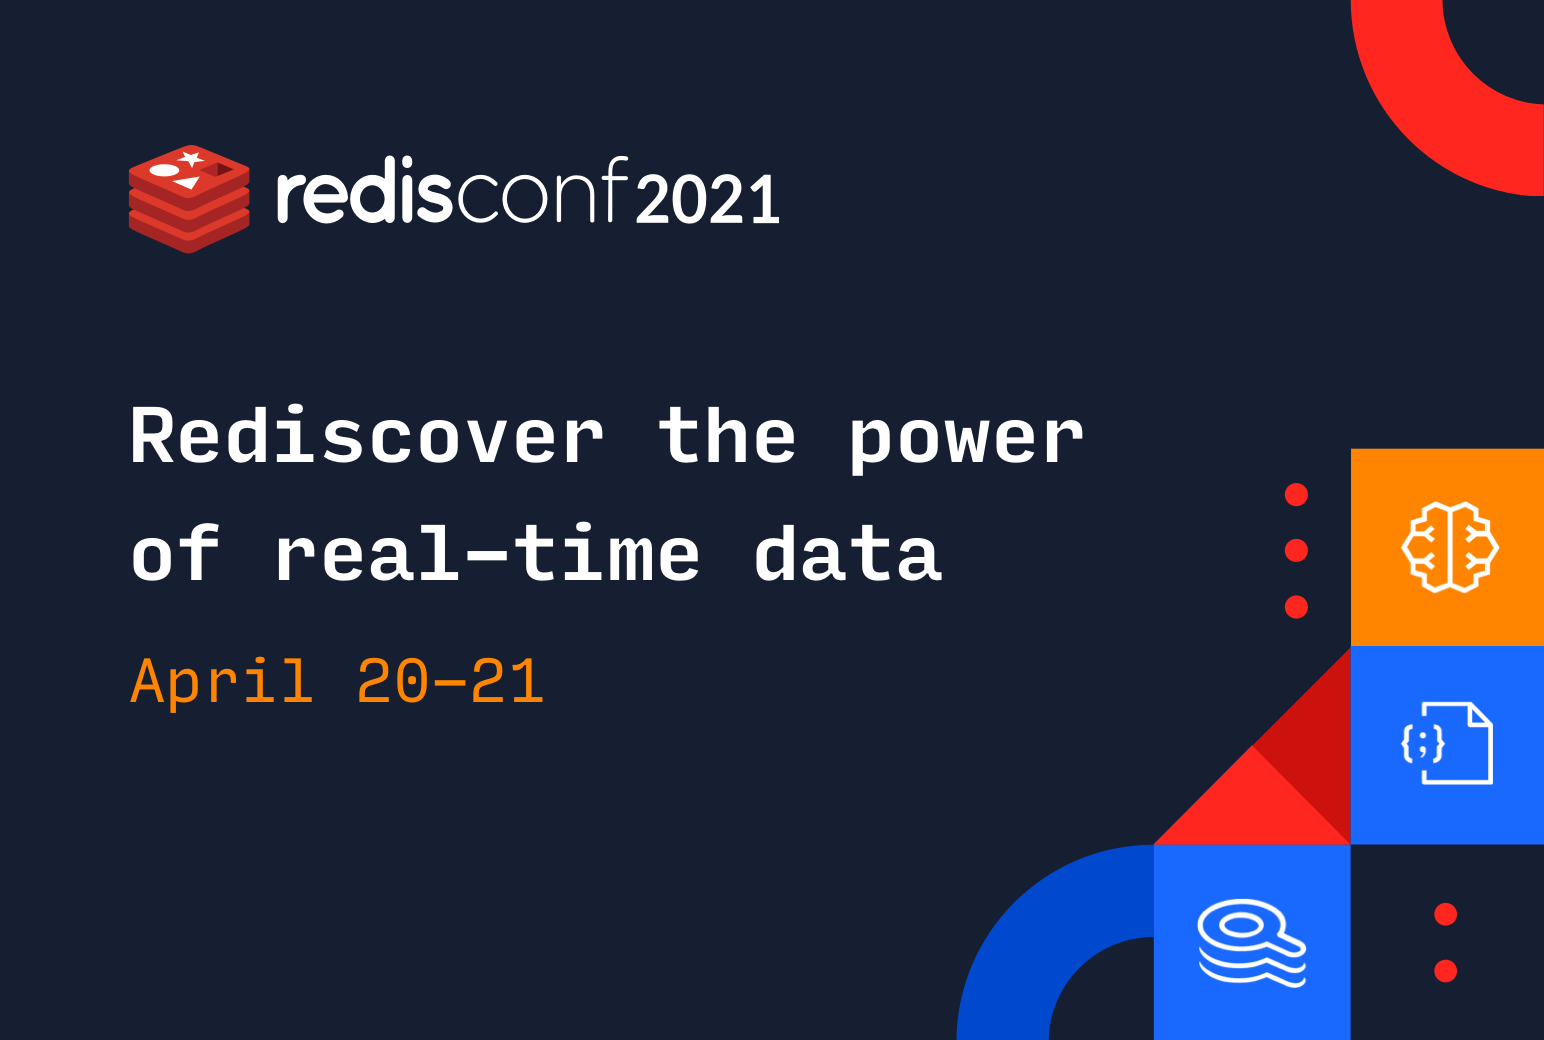 Redis demonstrates the power of real-time data at RedisConf 2021 - SiliconANGLE